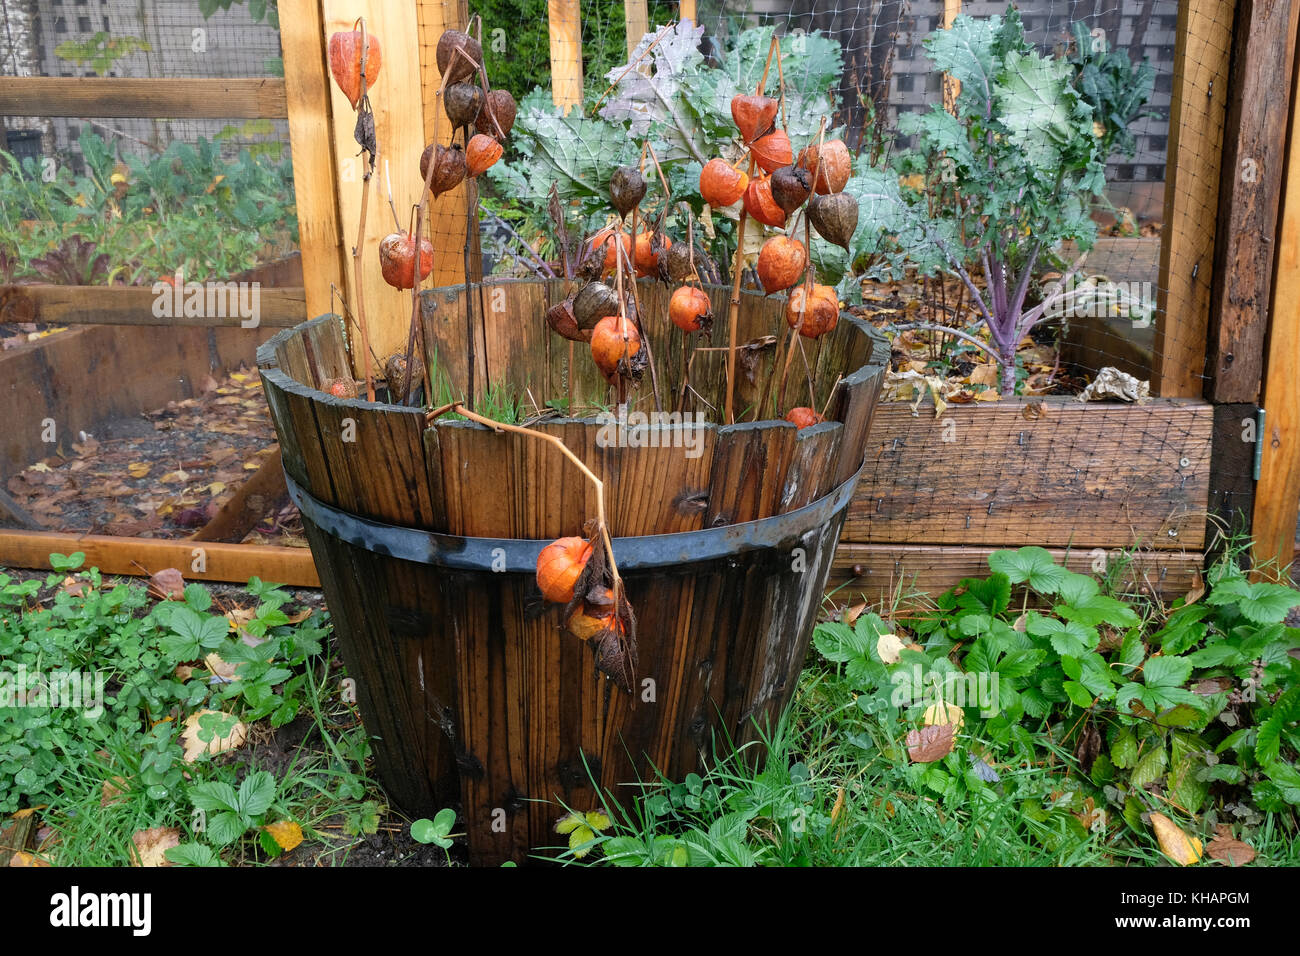 Chinese Lantern Plant With Orange Flowers In Old Wooden Planter Box